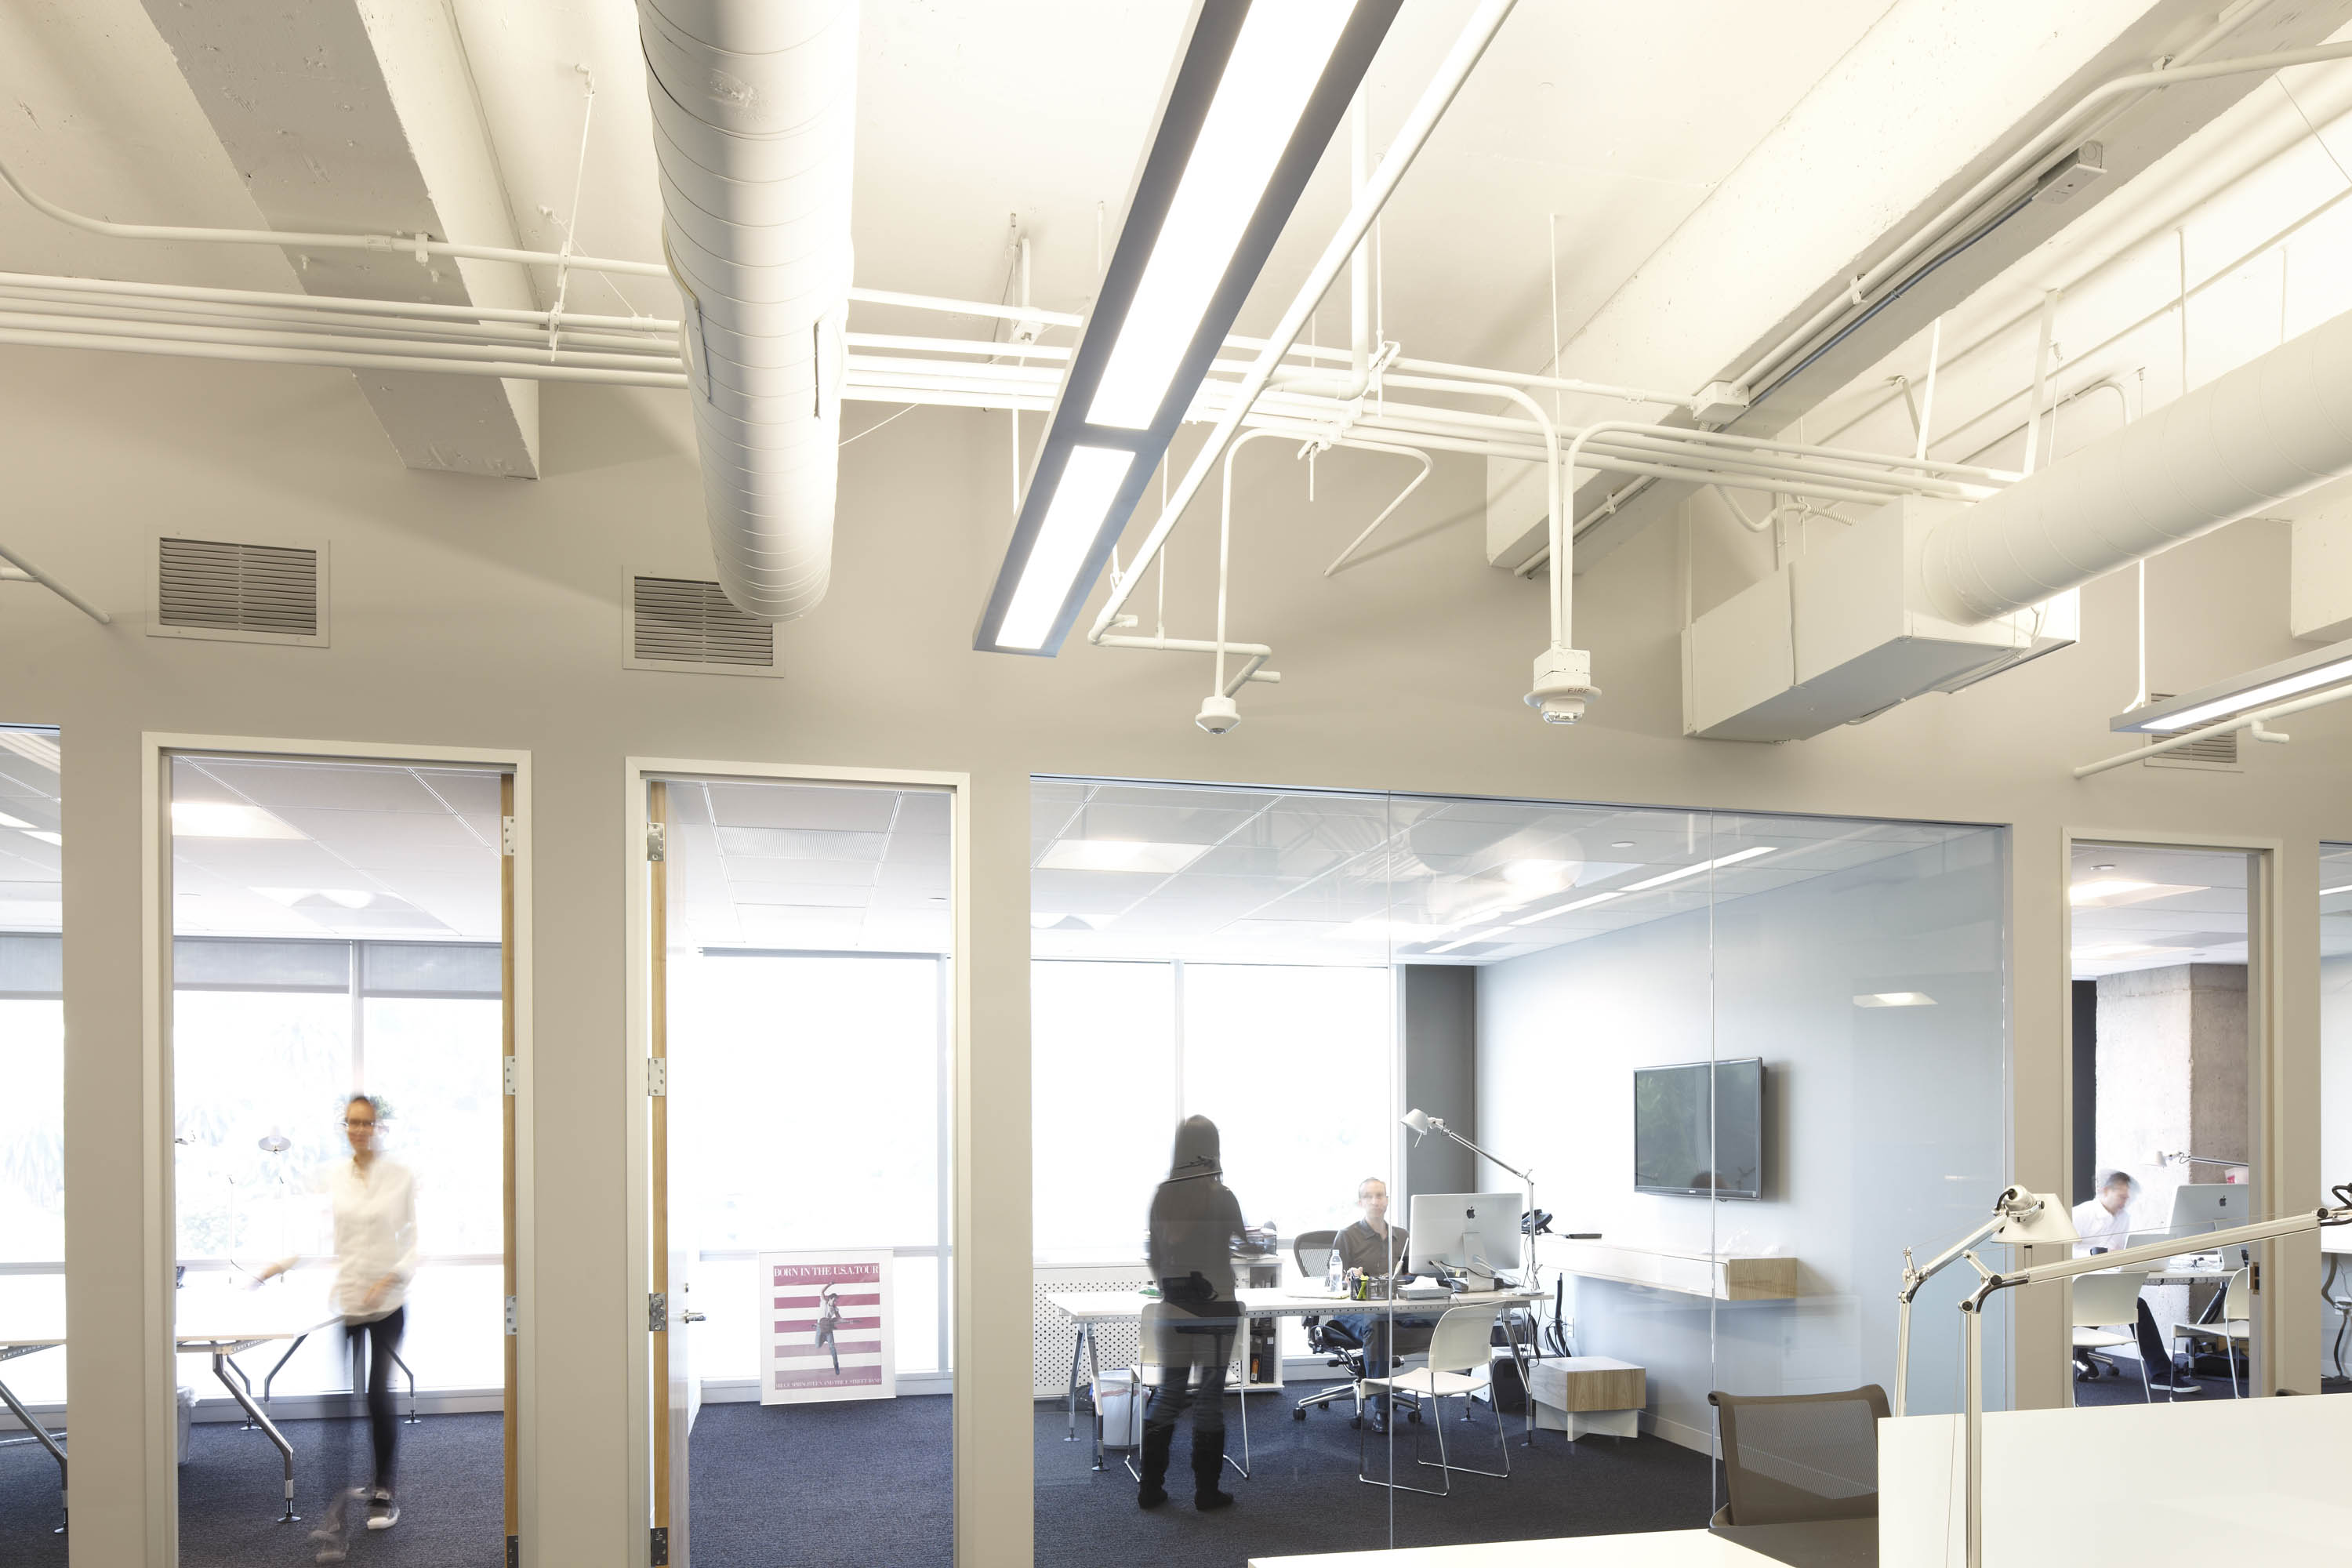 Office Lighting 2015 Dimmers Sensors And Energy Reduction Regulations